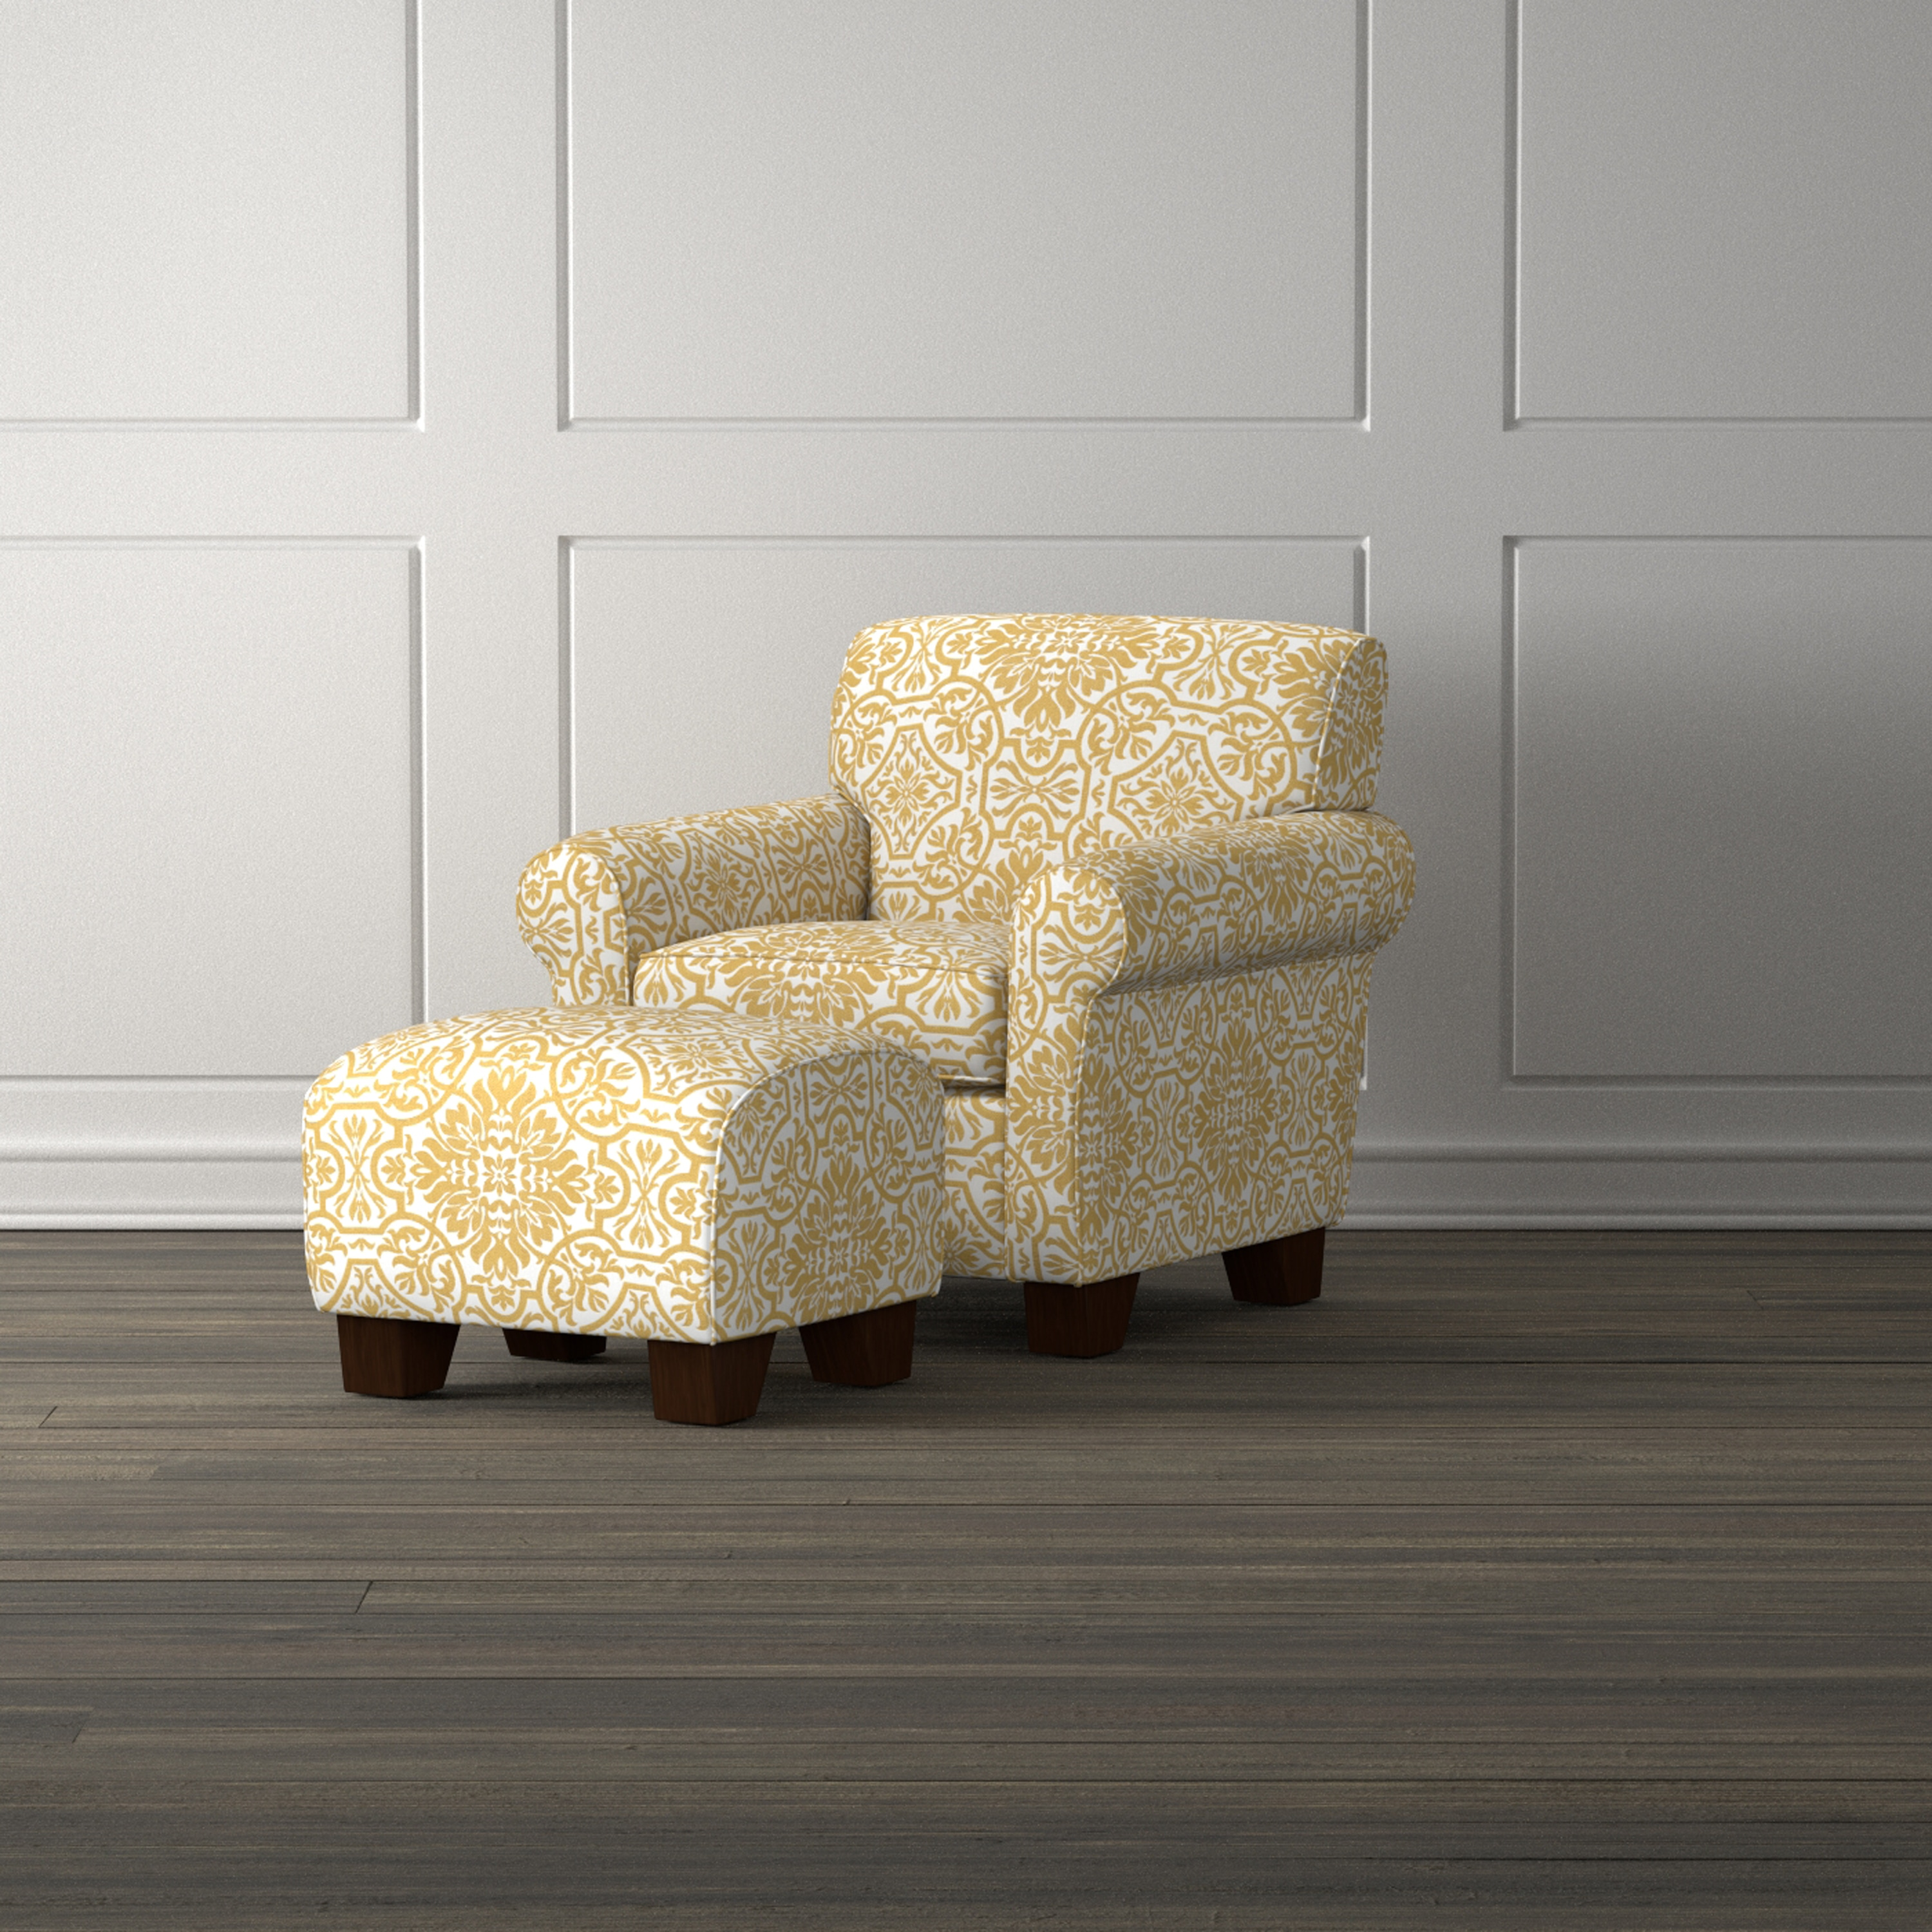 and garden ottoman ottomans today chair home shipping dalton free with product overstock chairs